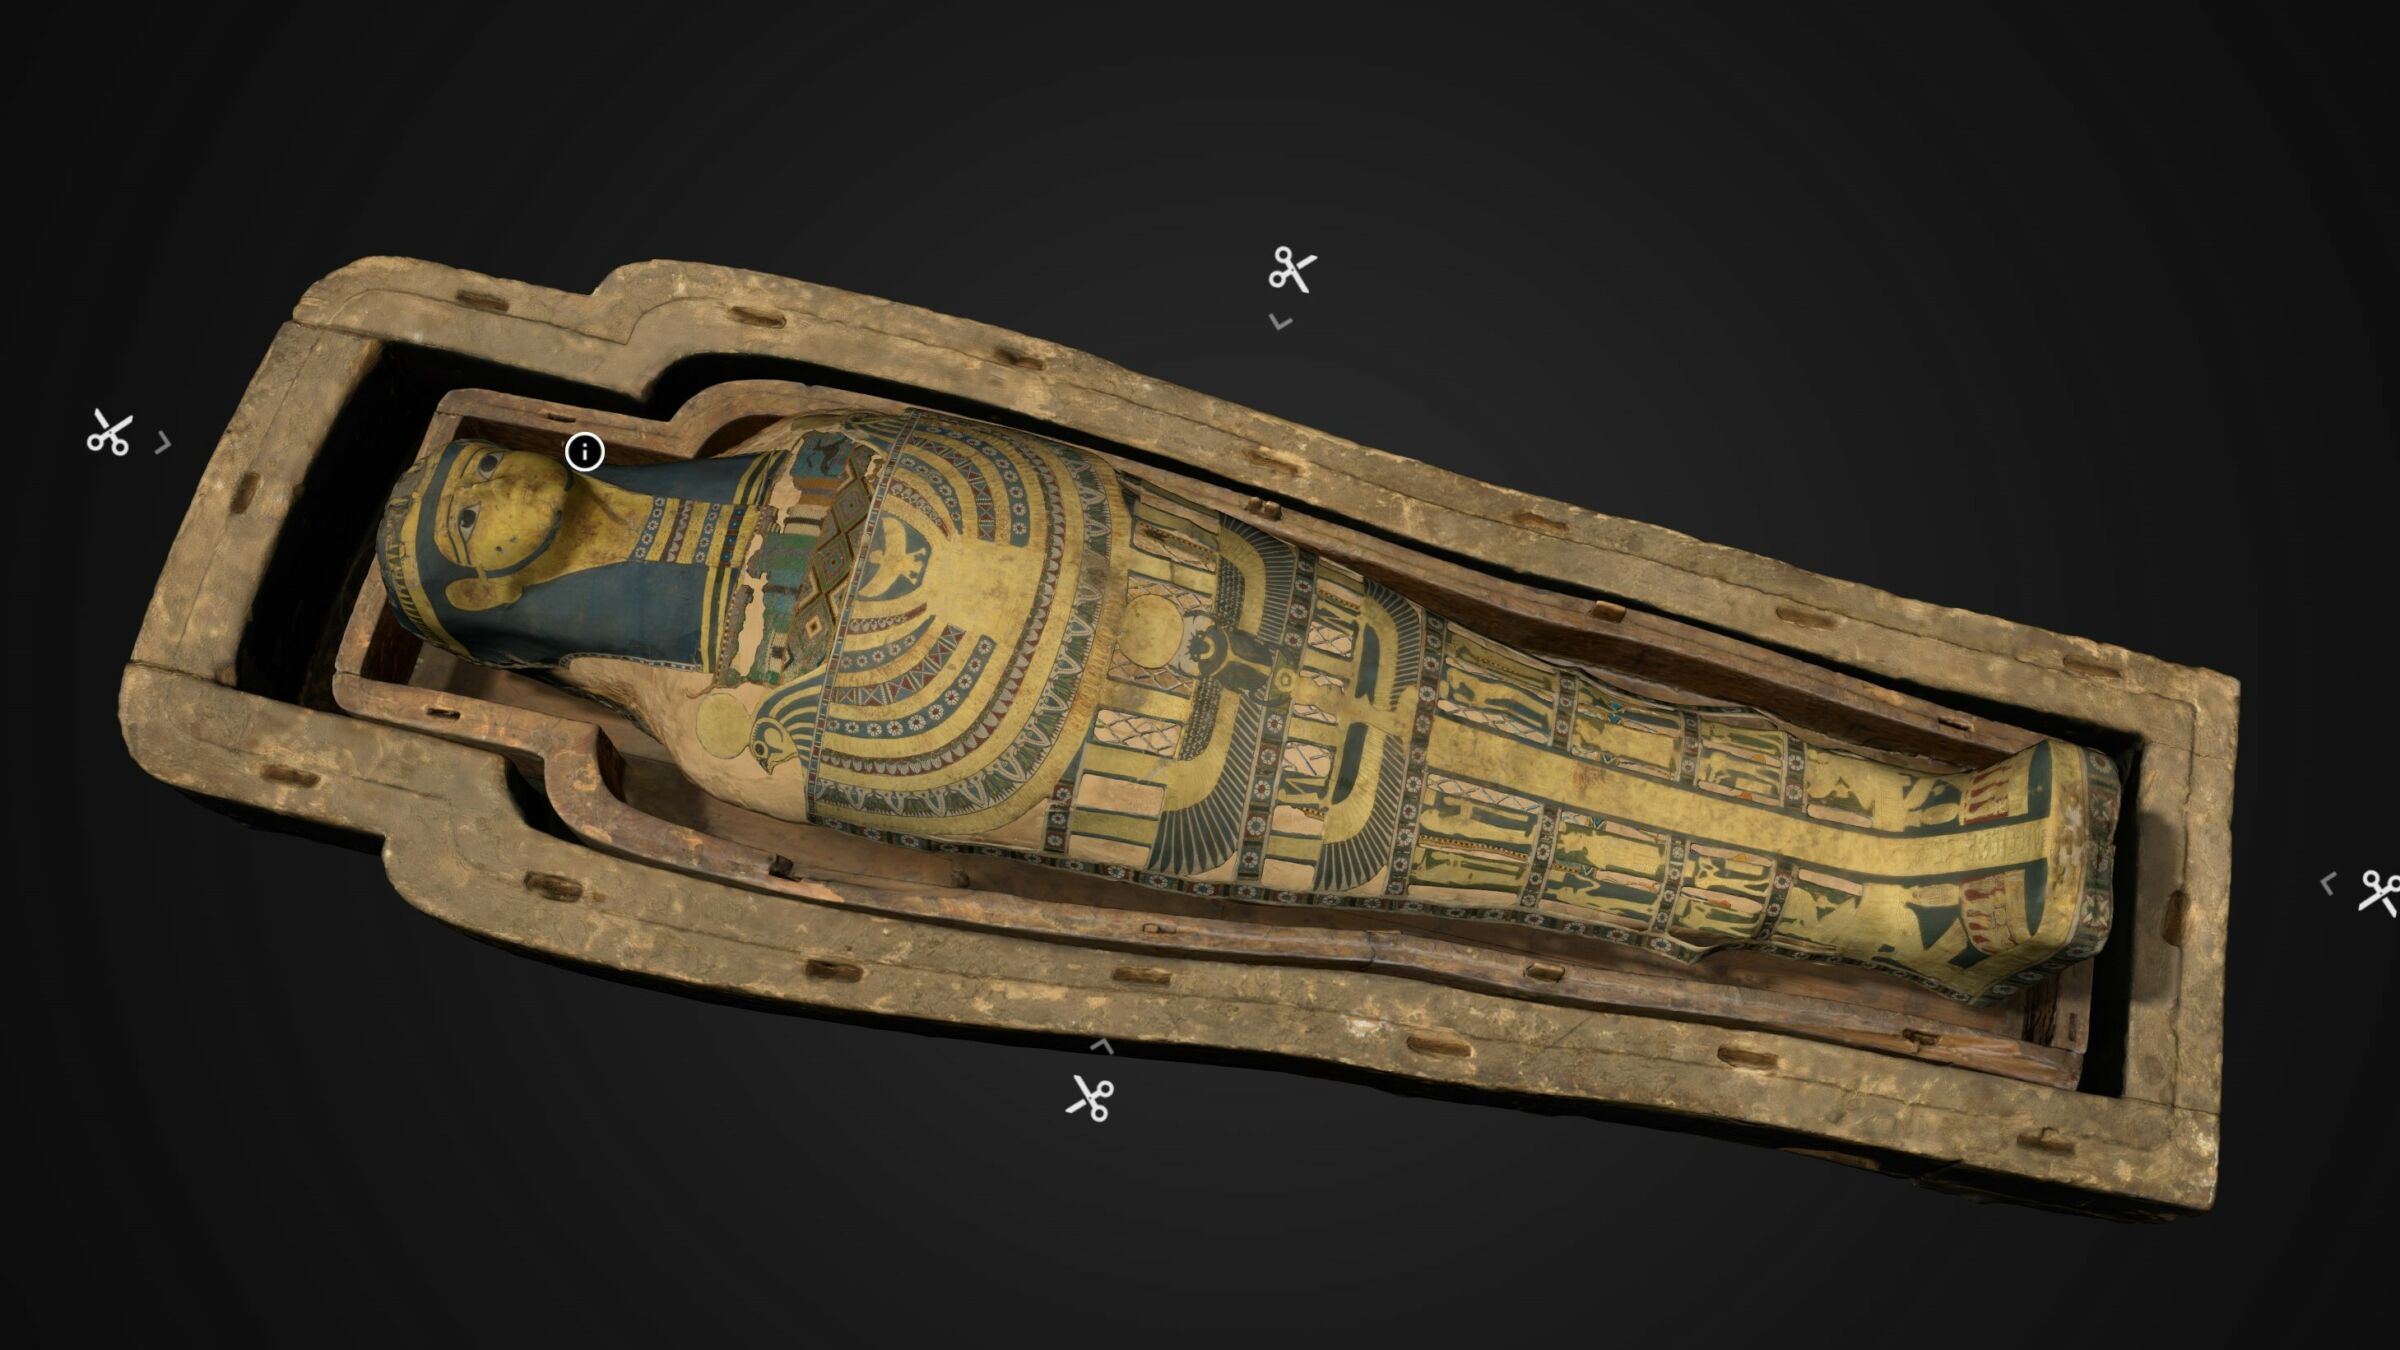 The digital unwrapping of ancient mummy named Neswaui in Inside Explorer